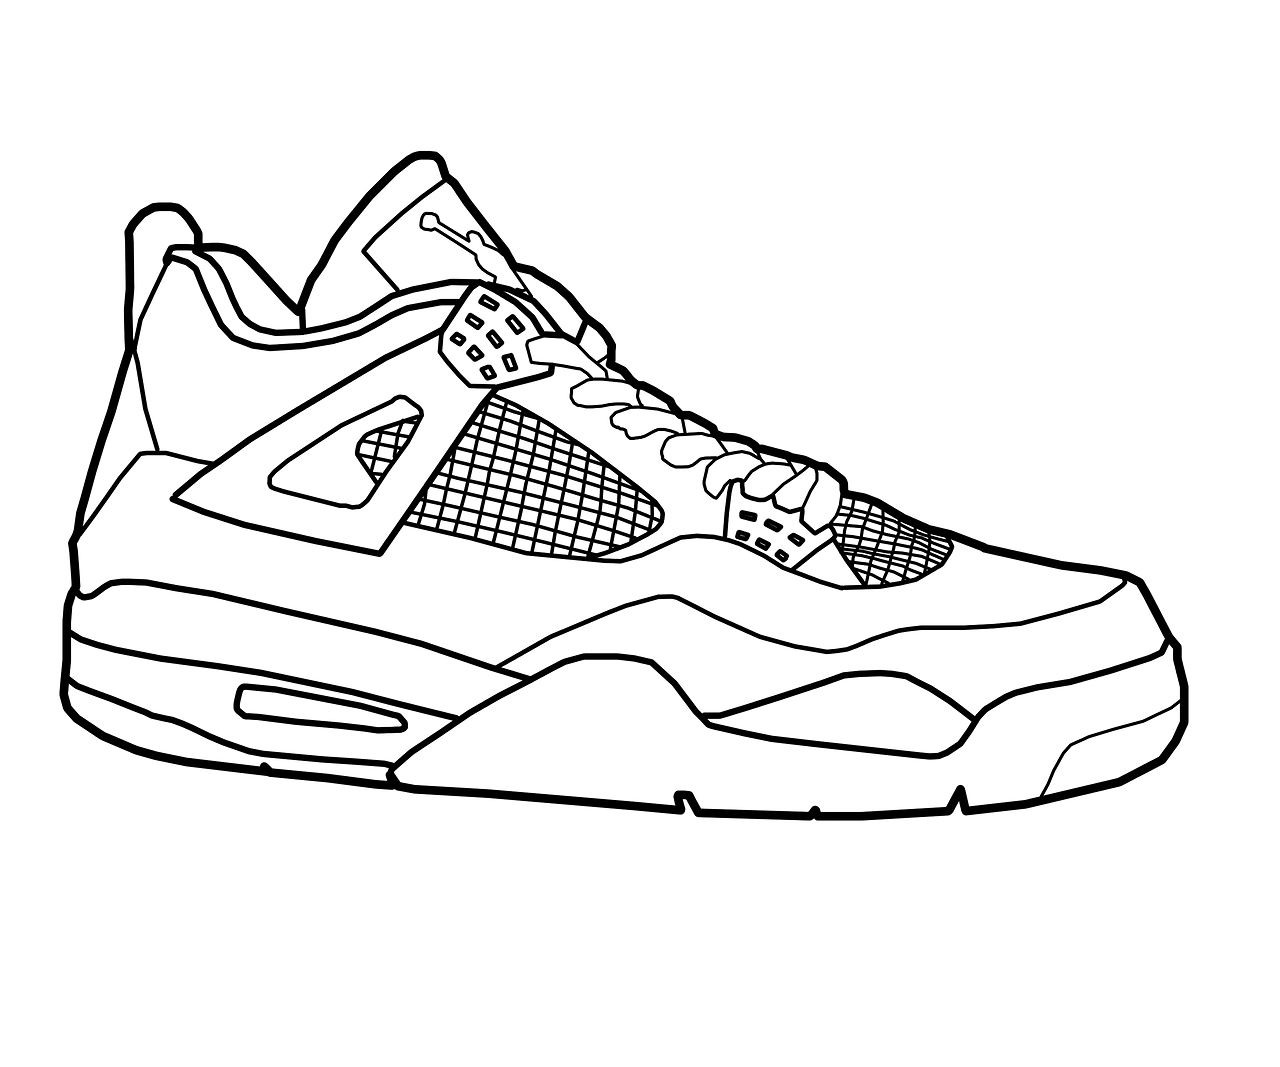 shoes coloring page basketball shoe coloring pages download and print for free shoes coloring page